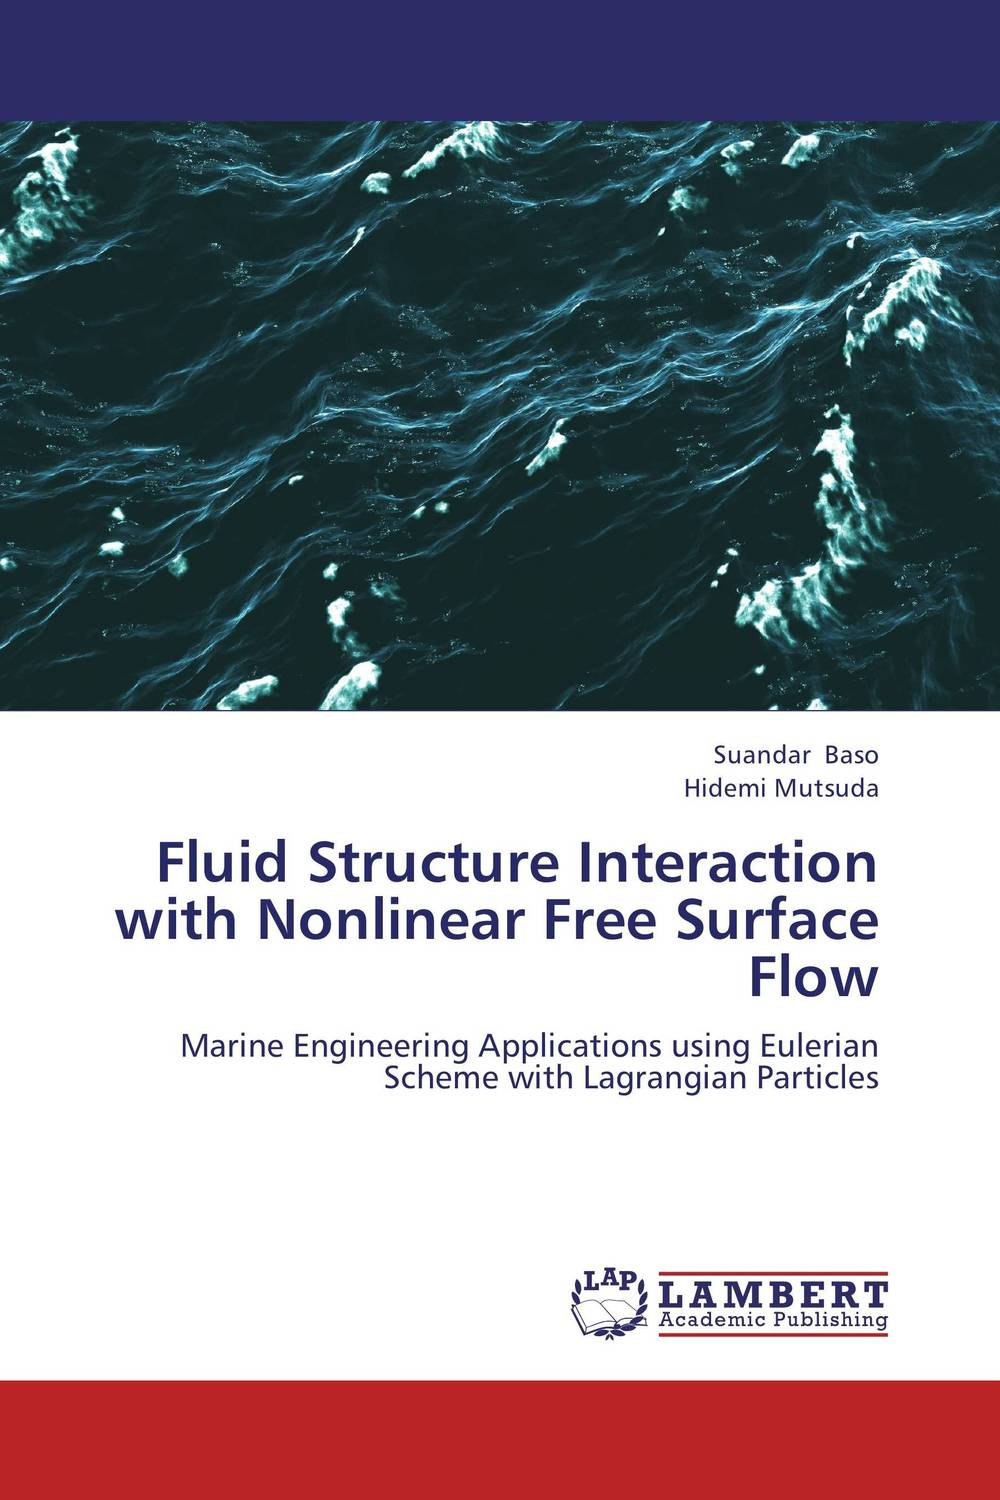 Fluid Structure Interaction with Nonlinear Free Surface Flow modified pnas synthesis and interaction studies with dna